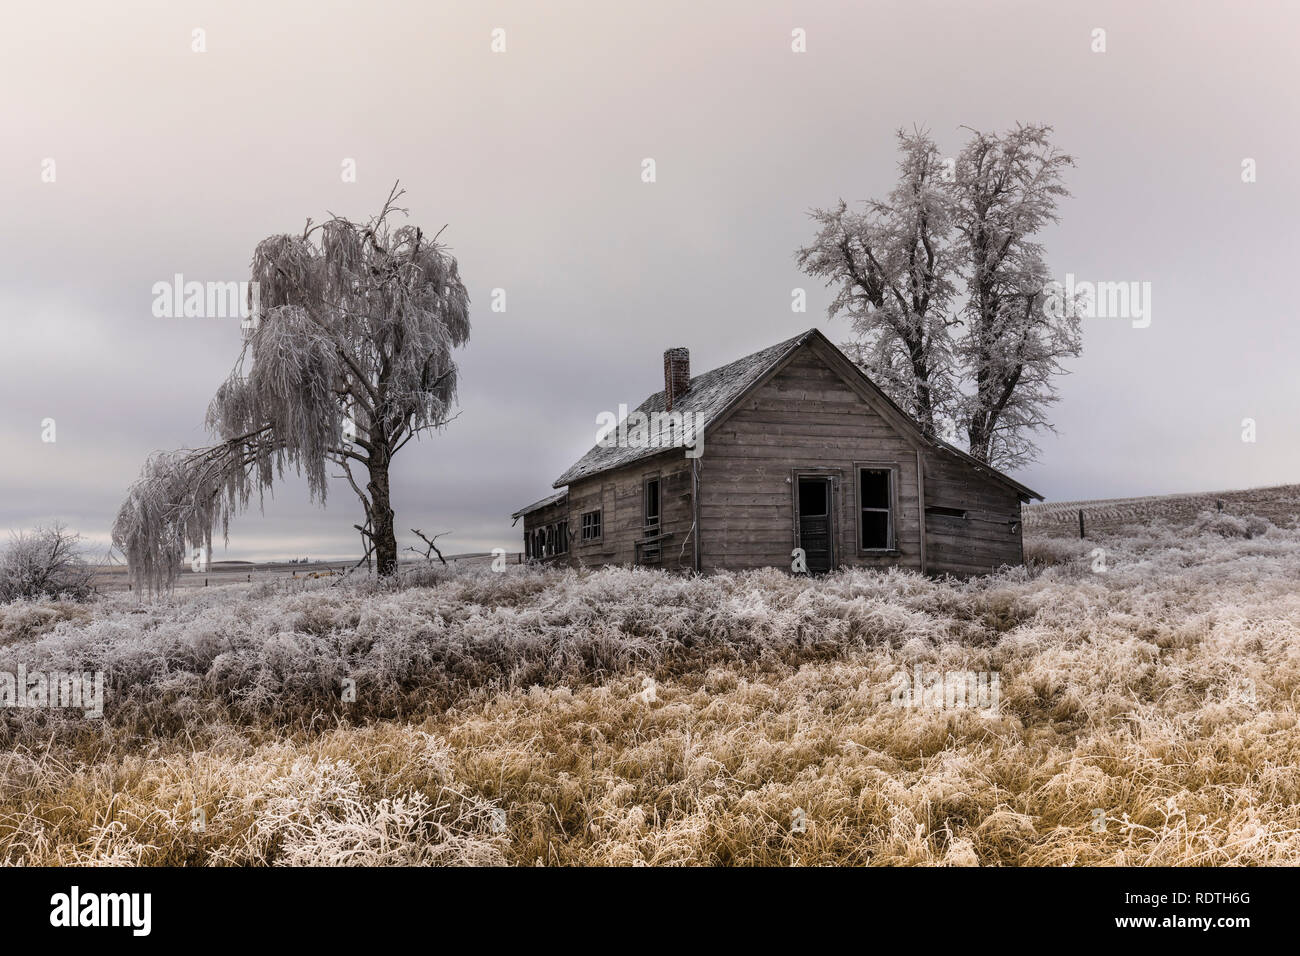 An abandoned rural homestead in winter with frost on the gorund near Davenport, Washington. - Stock Image